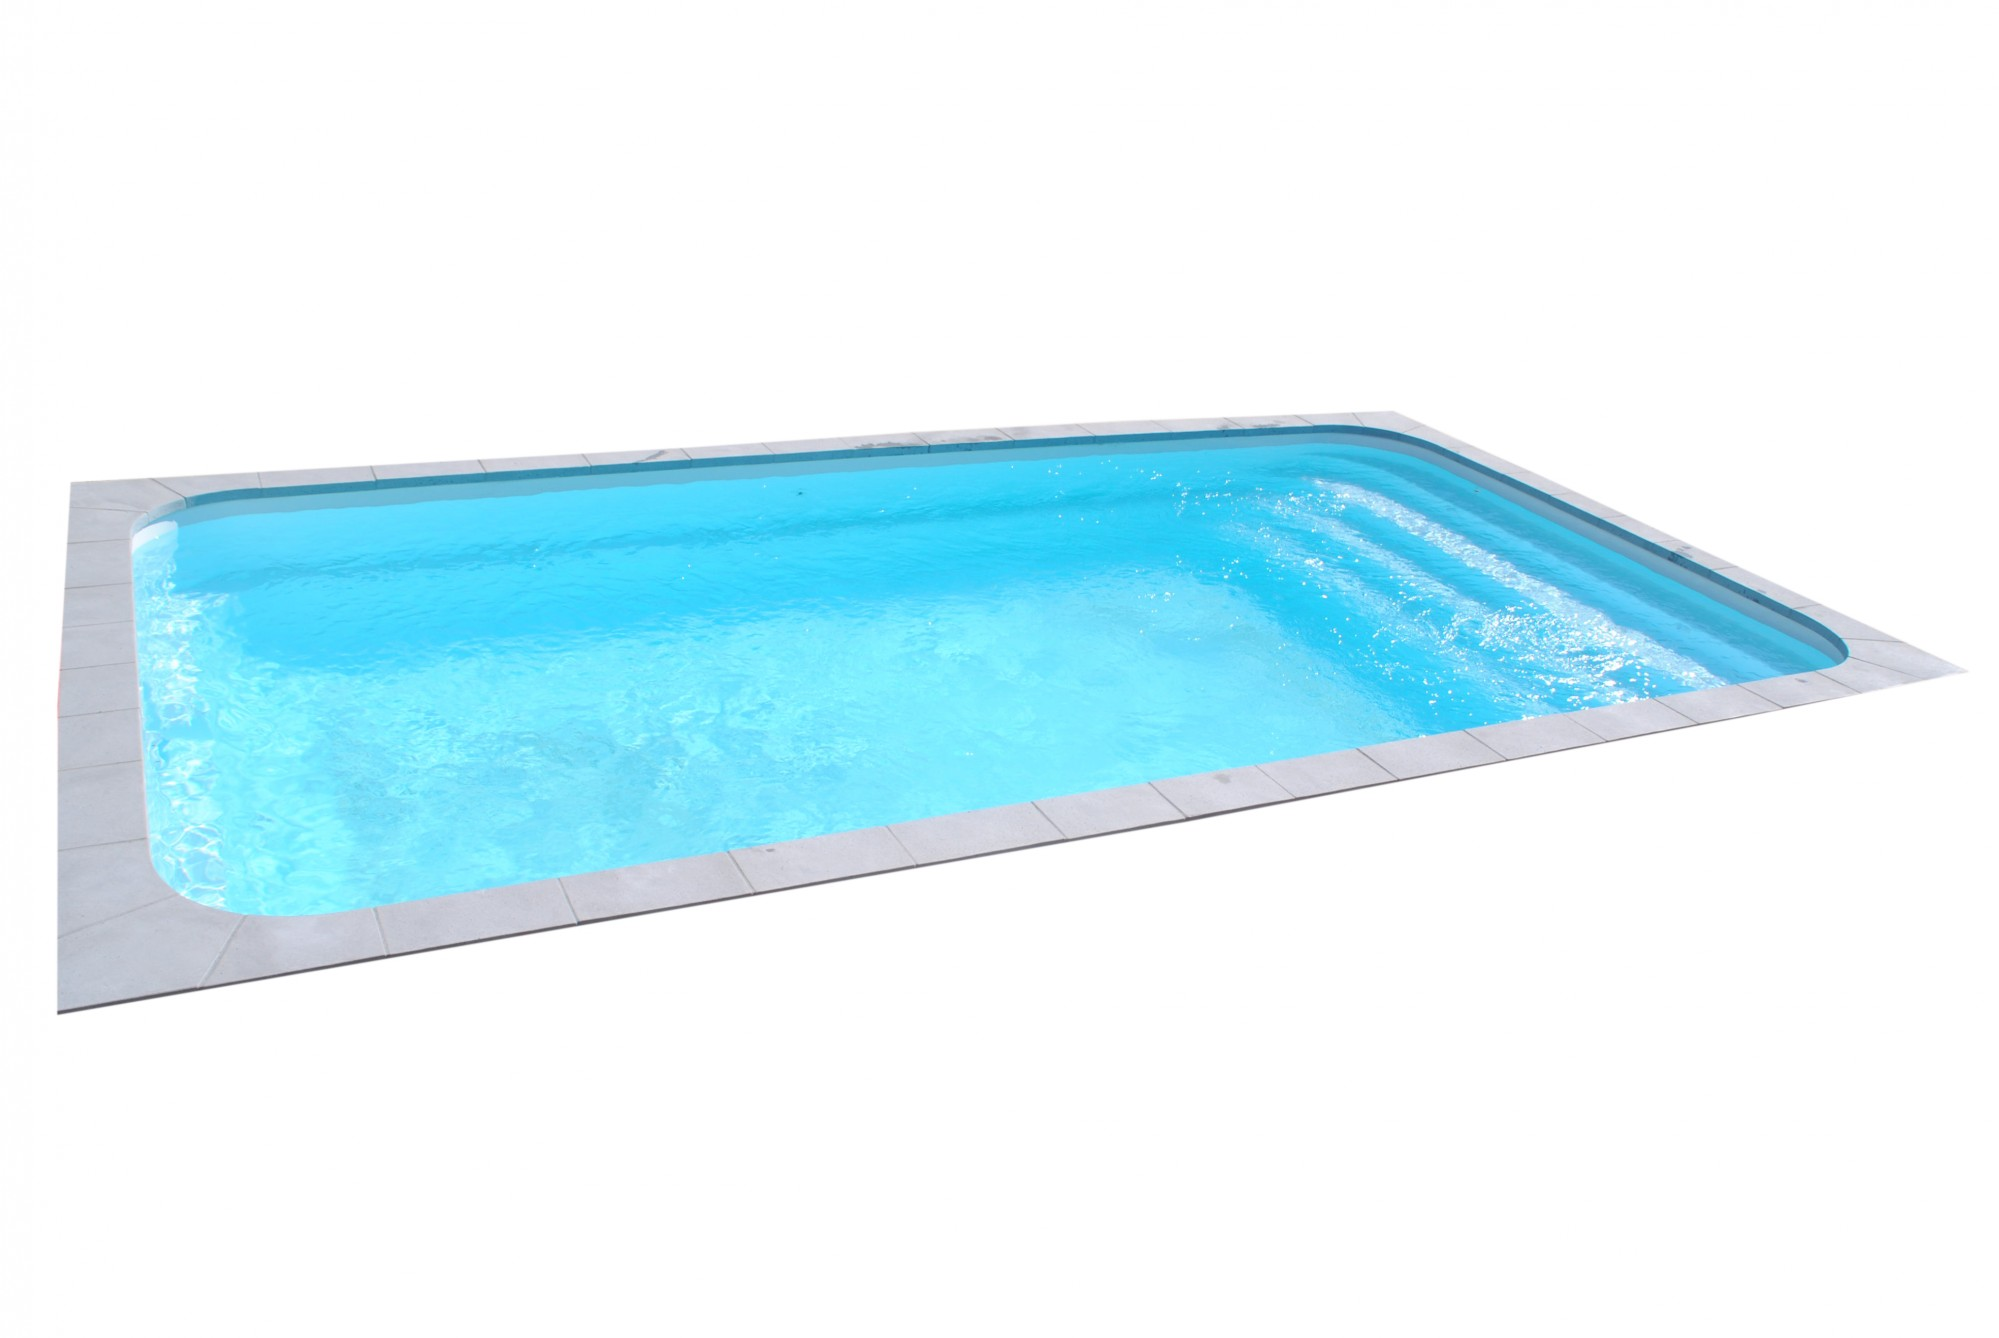 Prix d 39 une piscine coque polyester 8x4 pose comprise for Pose piscine coque